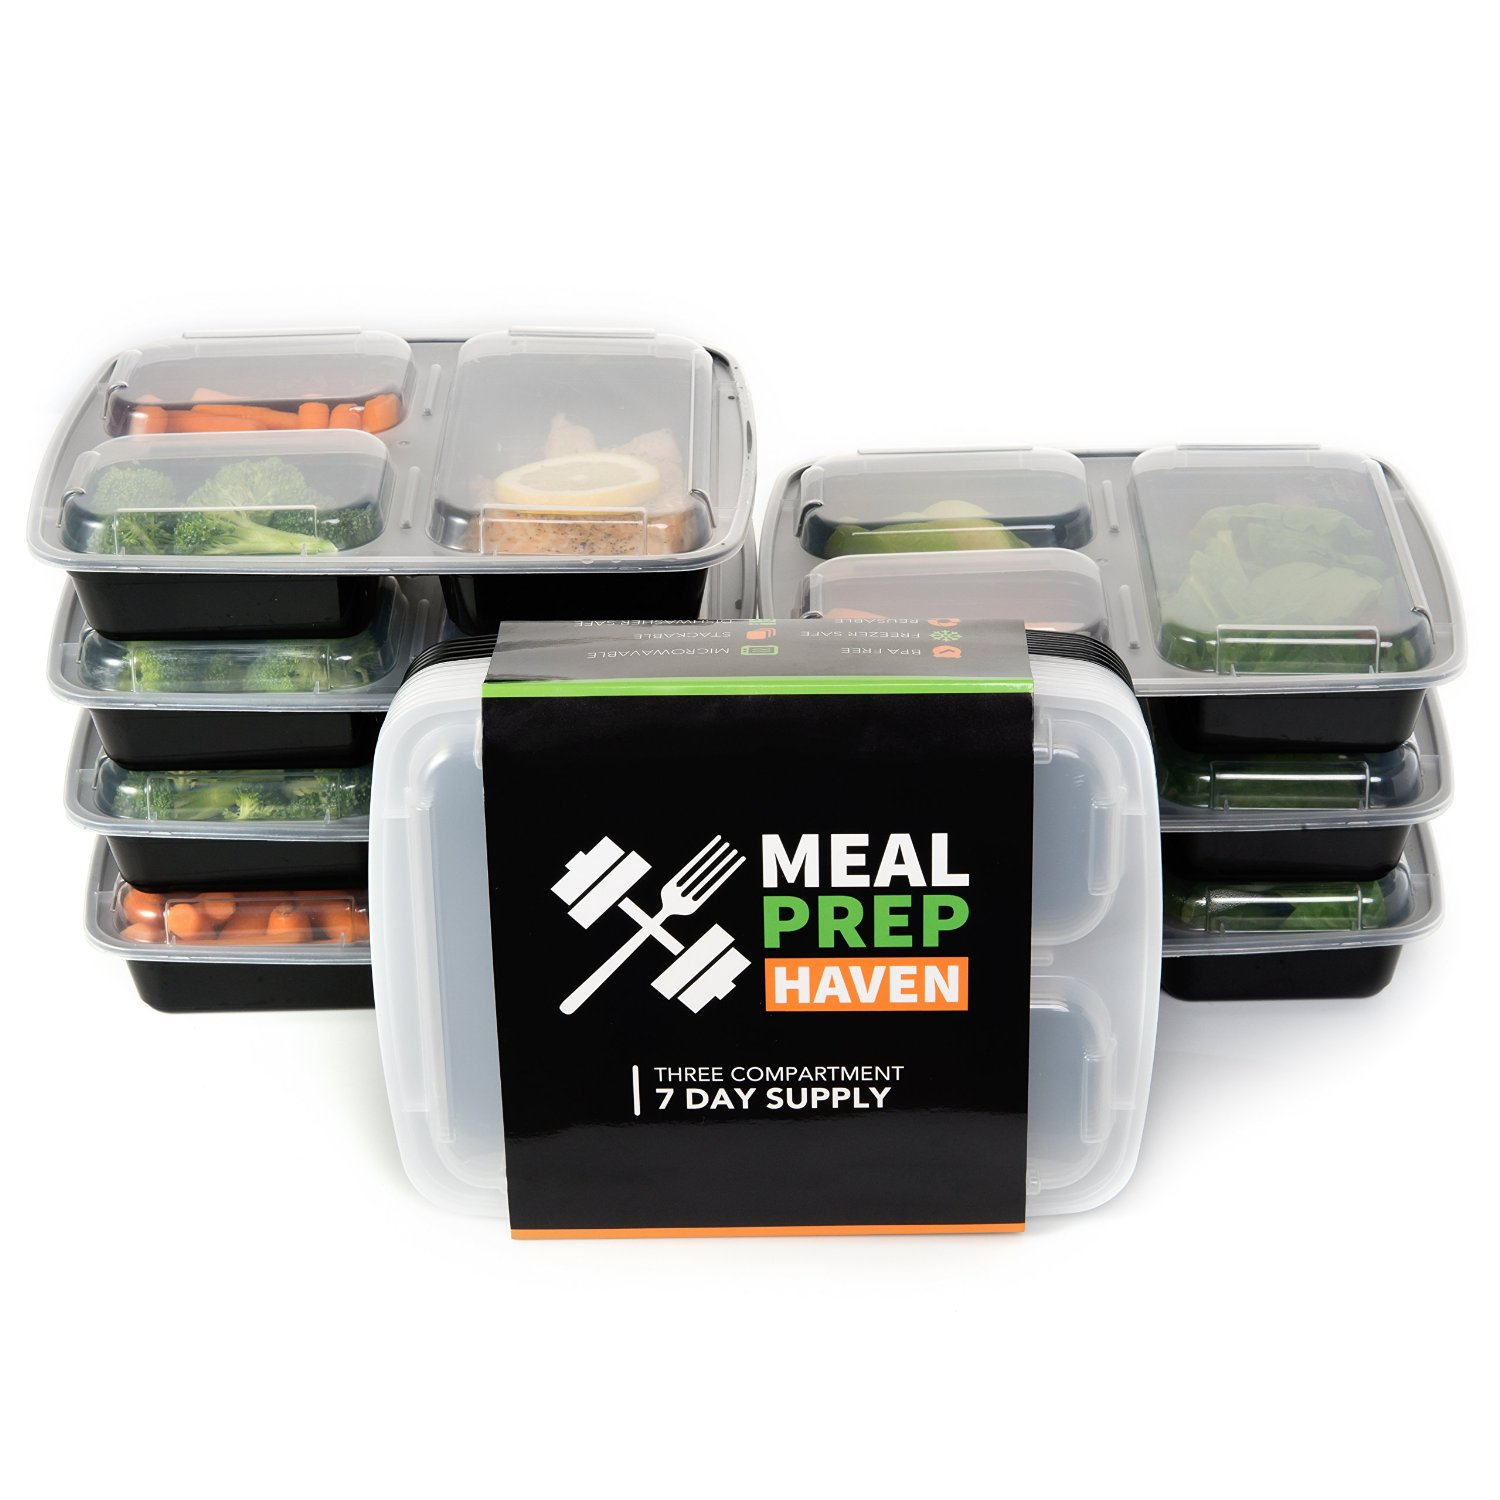 meal prep haven 3 compartment food storage containers with lids reusable microwave and dishwasher